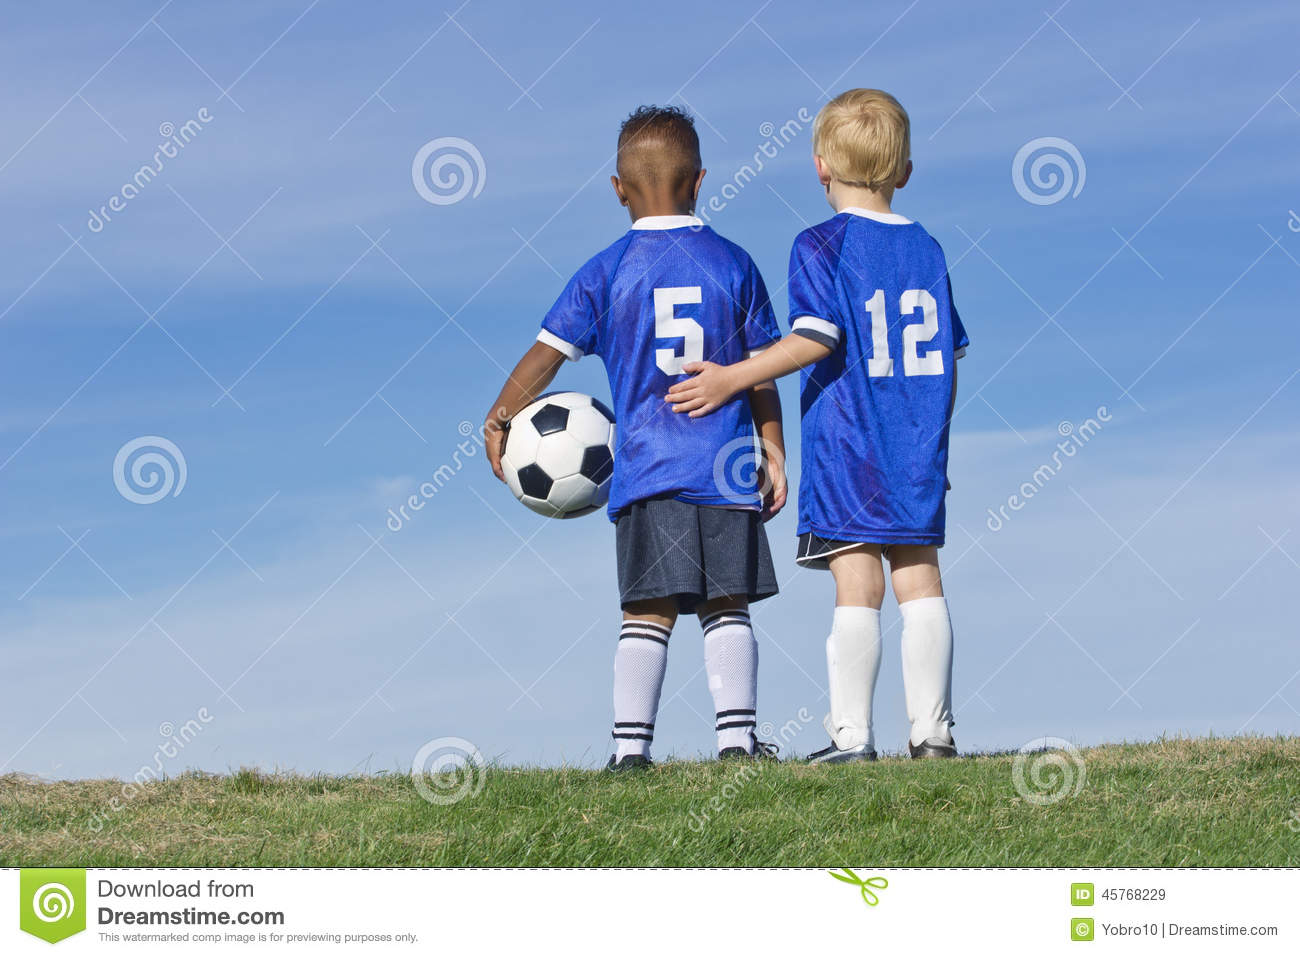 Young Kids On A Soccer Team Stock Photo - Image: 45768229